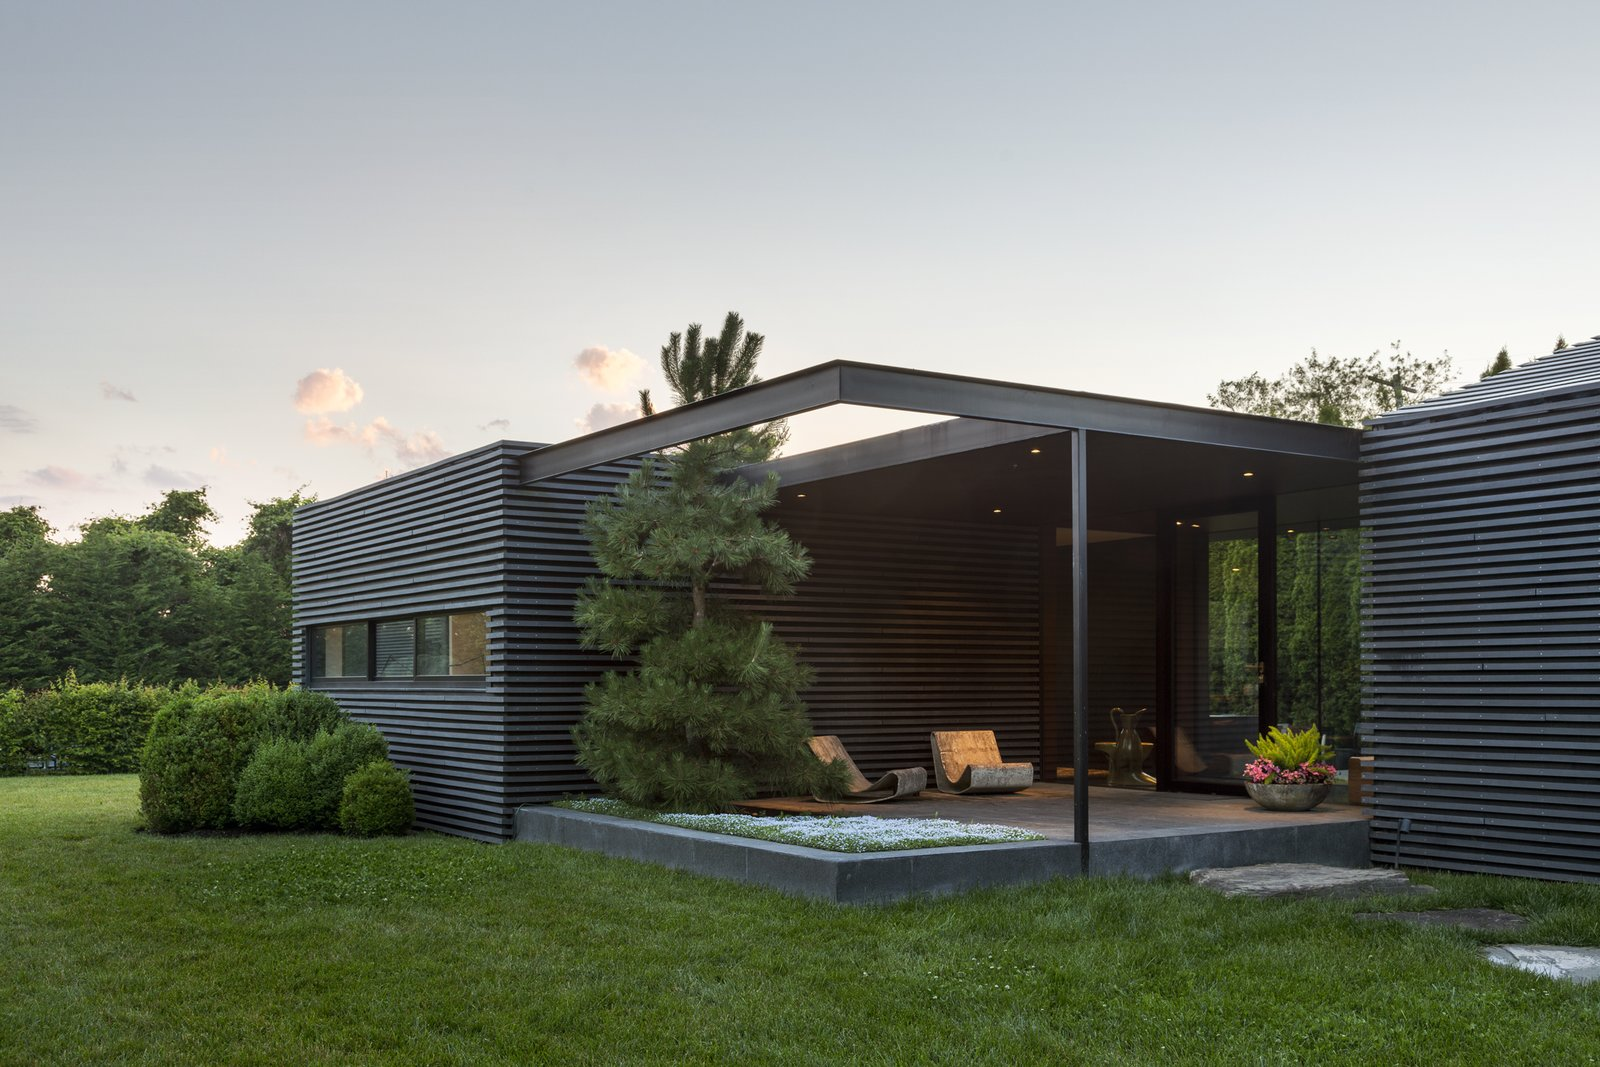 Tagged: Outdoor, Front Yard, Grass, Walkways, Gardens, Trees, Small Patio, Porch, Deck, Stone Patio, Porch, Deck, and Planters Patio, Porch, Deck.  Black House by Oza/Sabbeth Architecture